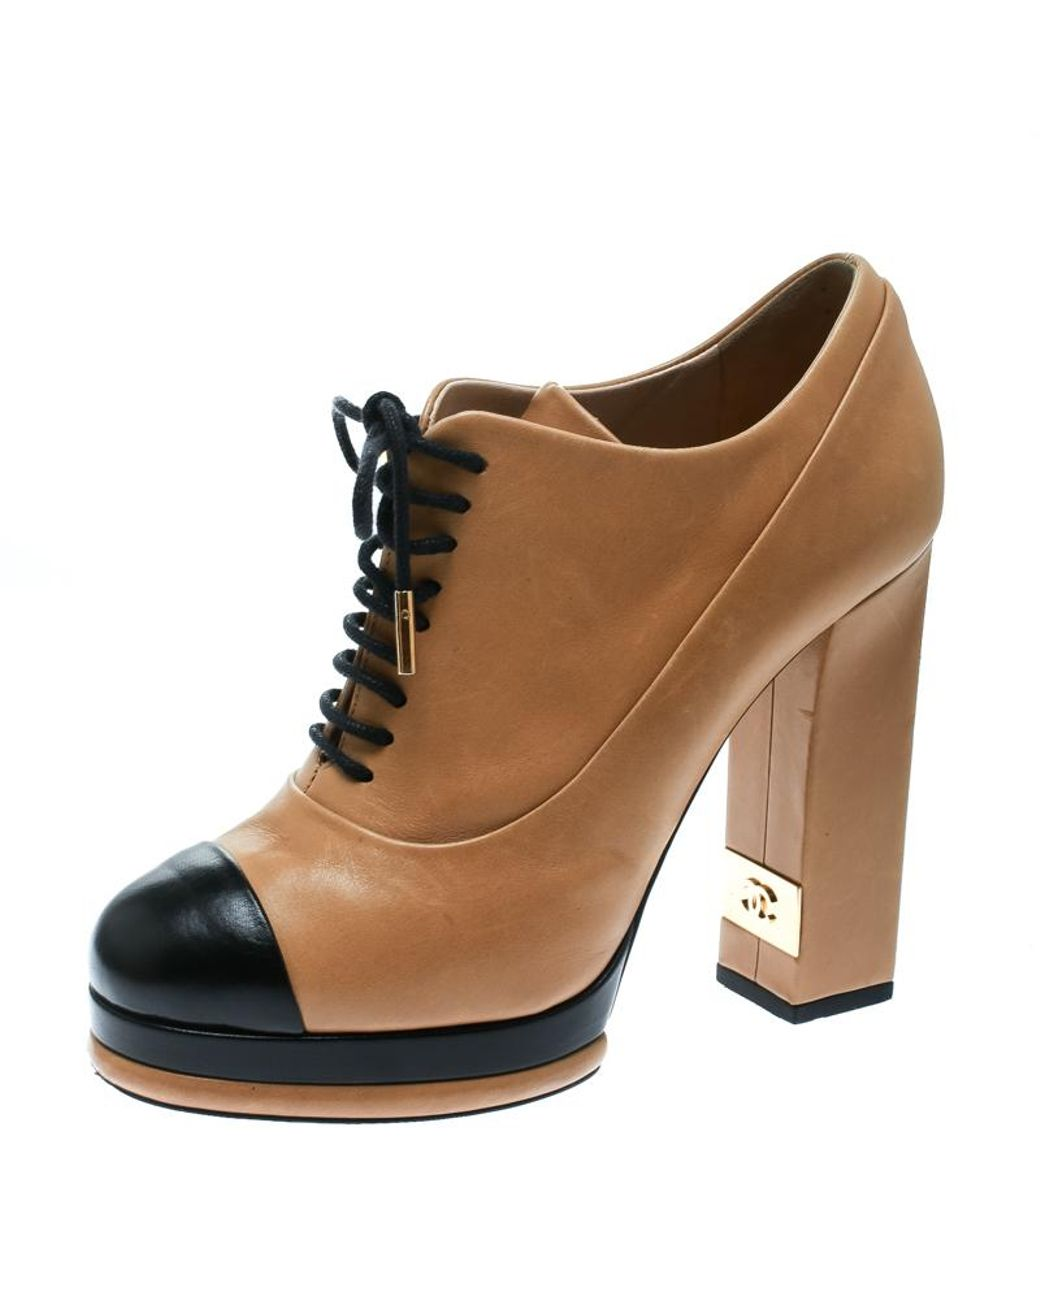 02a8ef540600b Chanel Beige/black Leather Cap Toe Platform Ankle Boots Size 40 in Natural  - Save 24% - Lyst